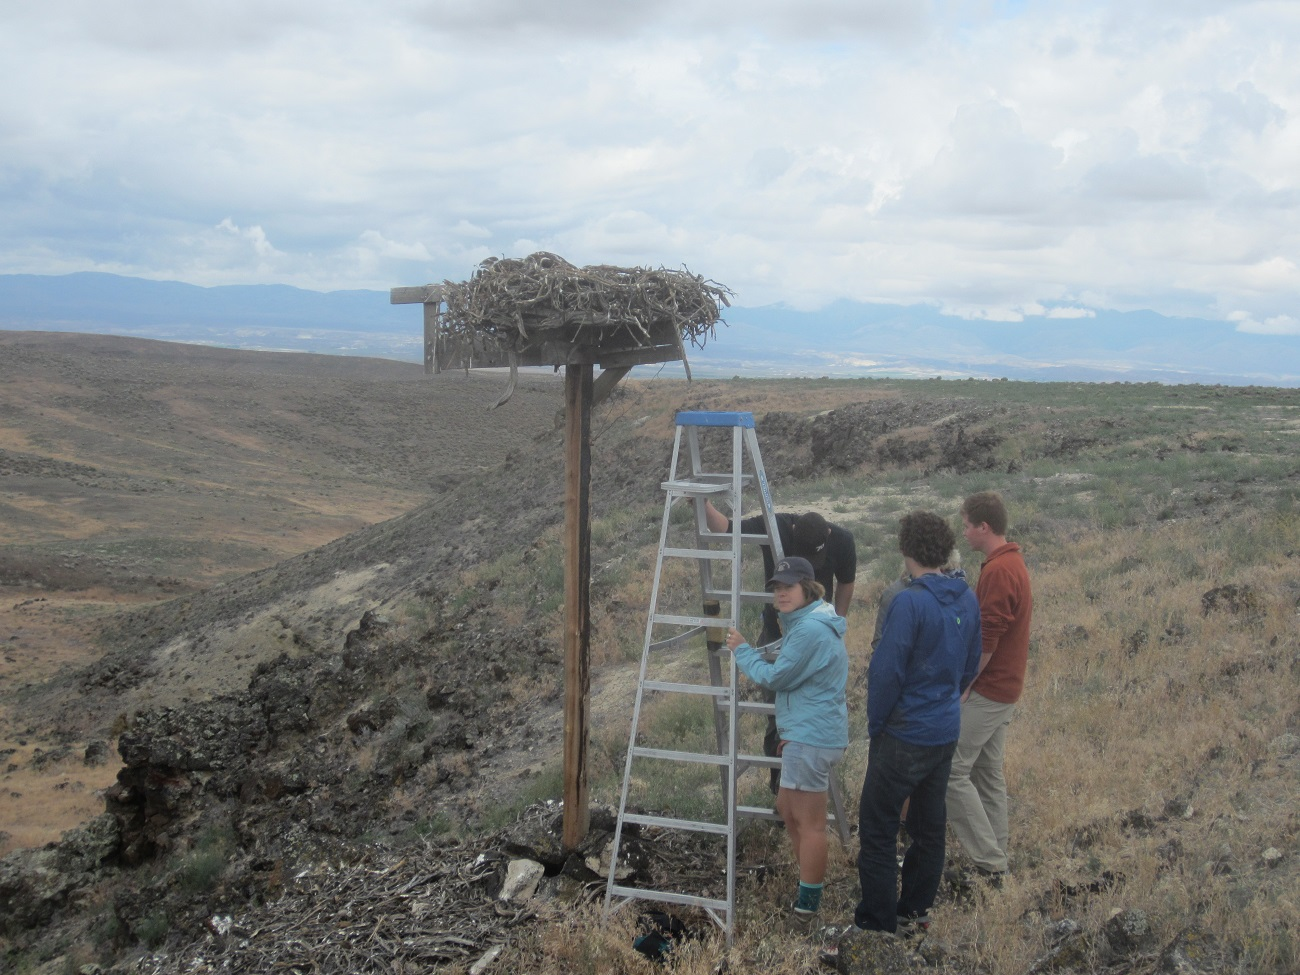 Ladder by a Ferruginous Hawk nest with people ready to band birds